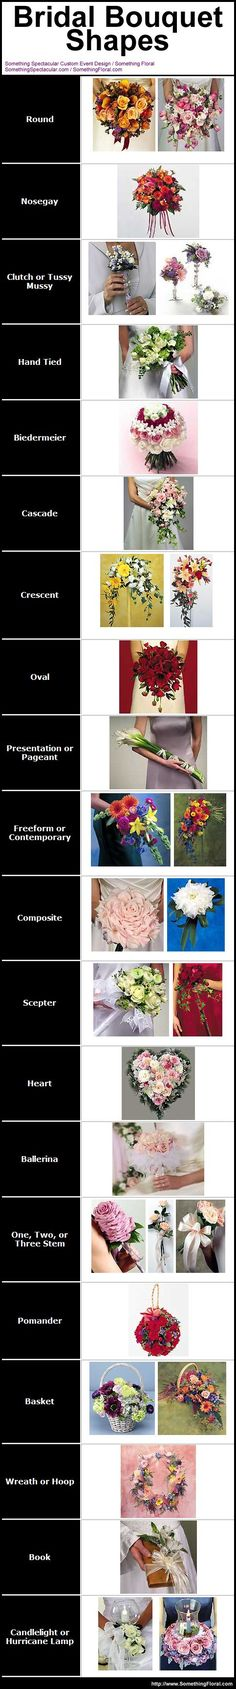 A helpful reference for brides. A pictorial list of bridal bouquet and bridesmaid bouquet shapes. #wedding #flowers #bouquet #bouquets #shapes #options #reference